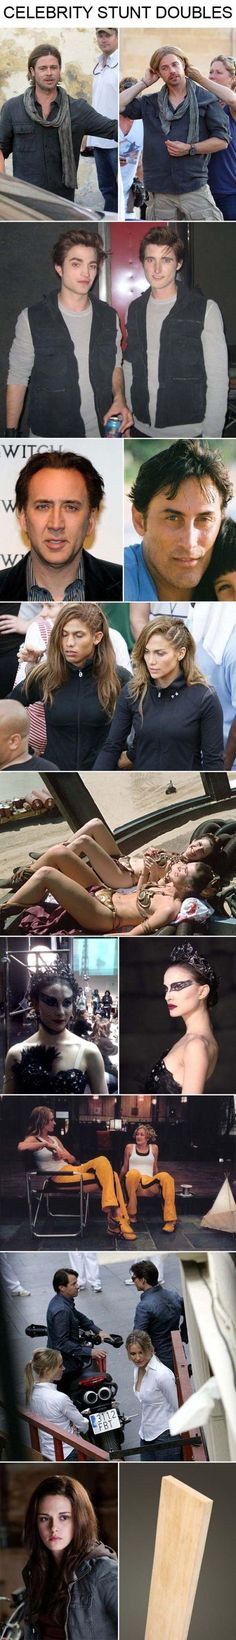 Celebrities & their Stunt Doubles; I didn't get the point of this at first but I busted out laughing when I figured it out